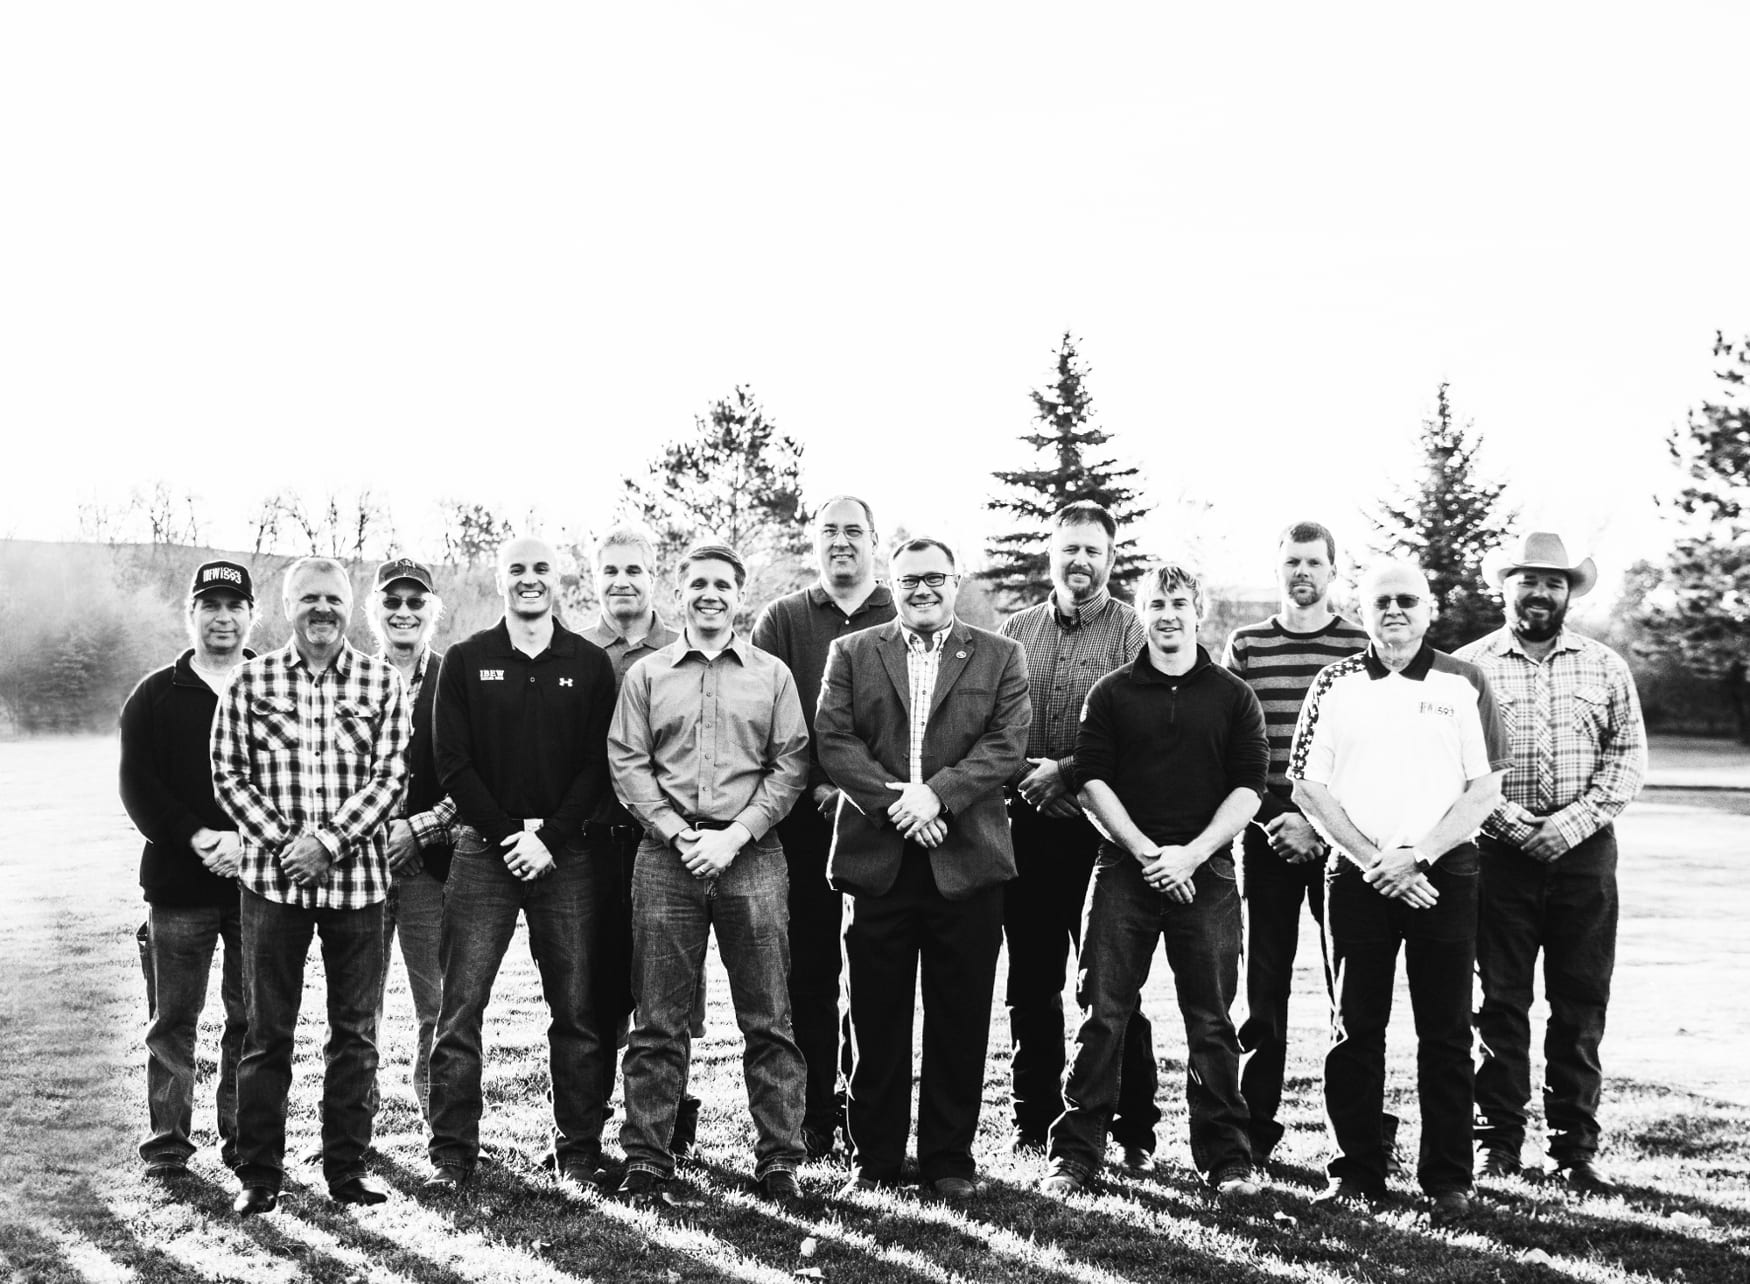 Black and white photo of 13 men wearing jeans and standing in a yard